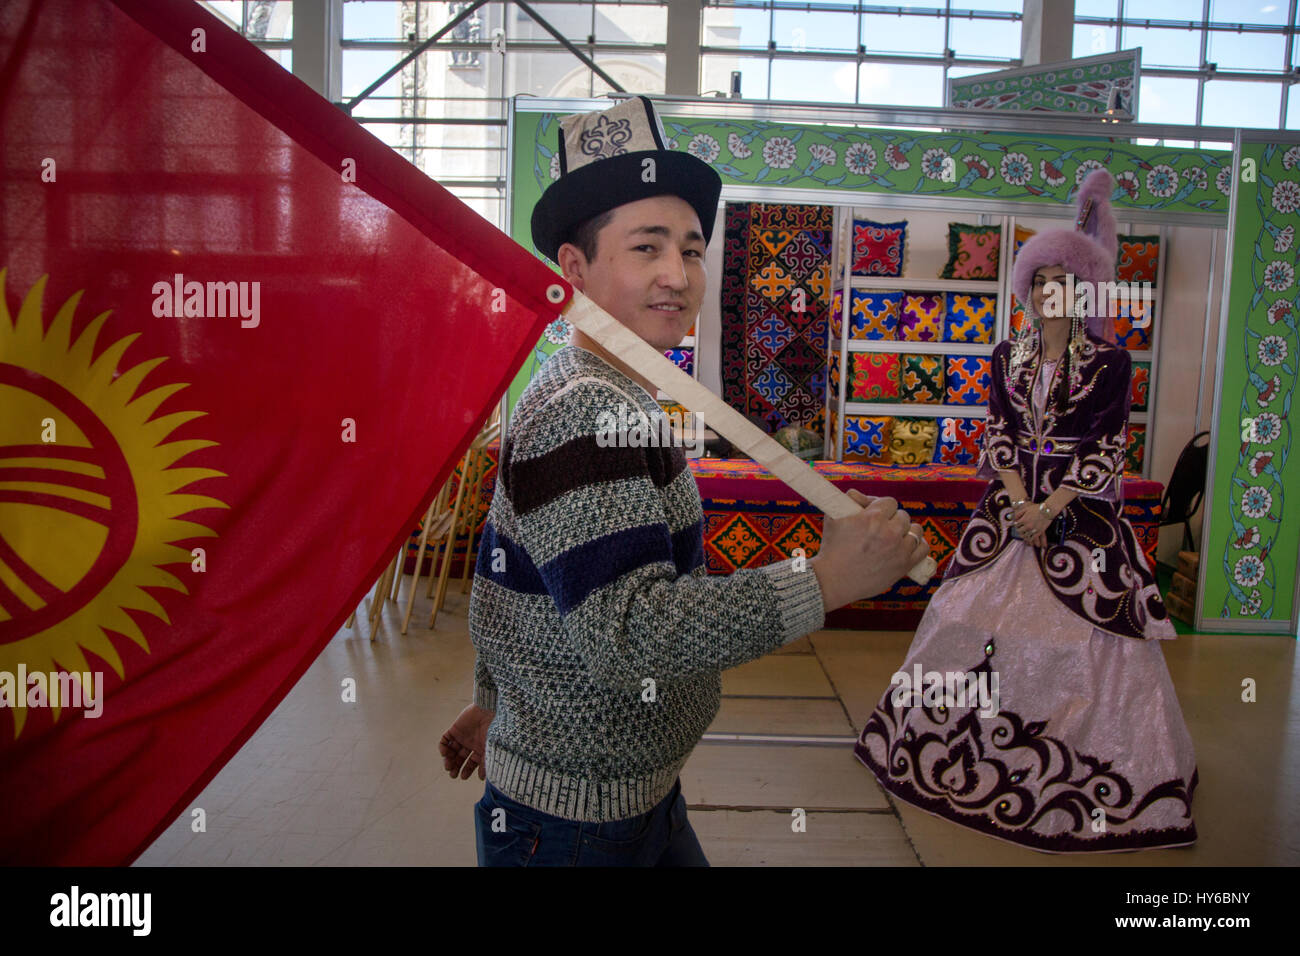 A man with the national flag of Kyrgyzstan during the Navruz holiday at VDNKh in Moscow, Russia - Stock Image